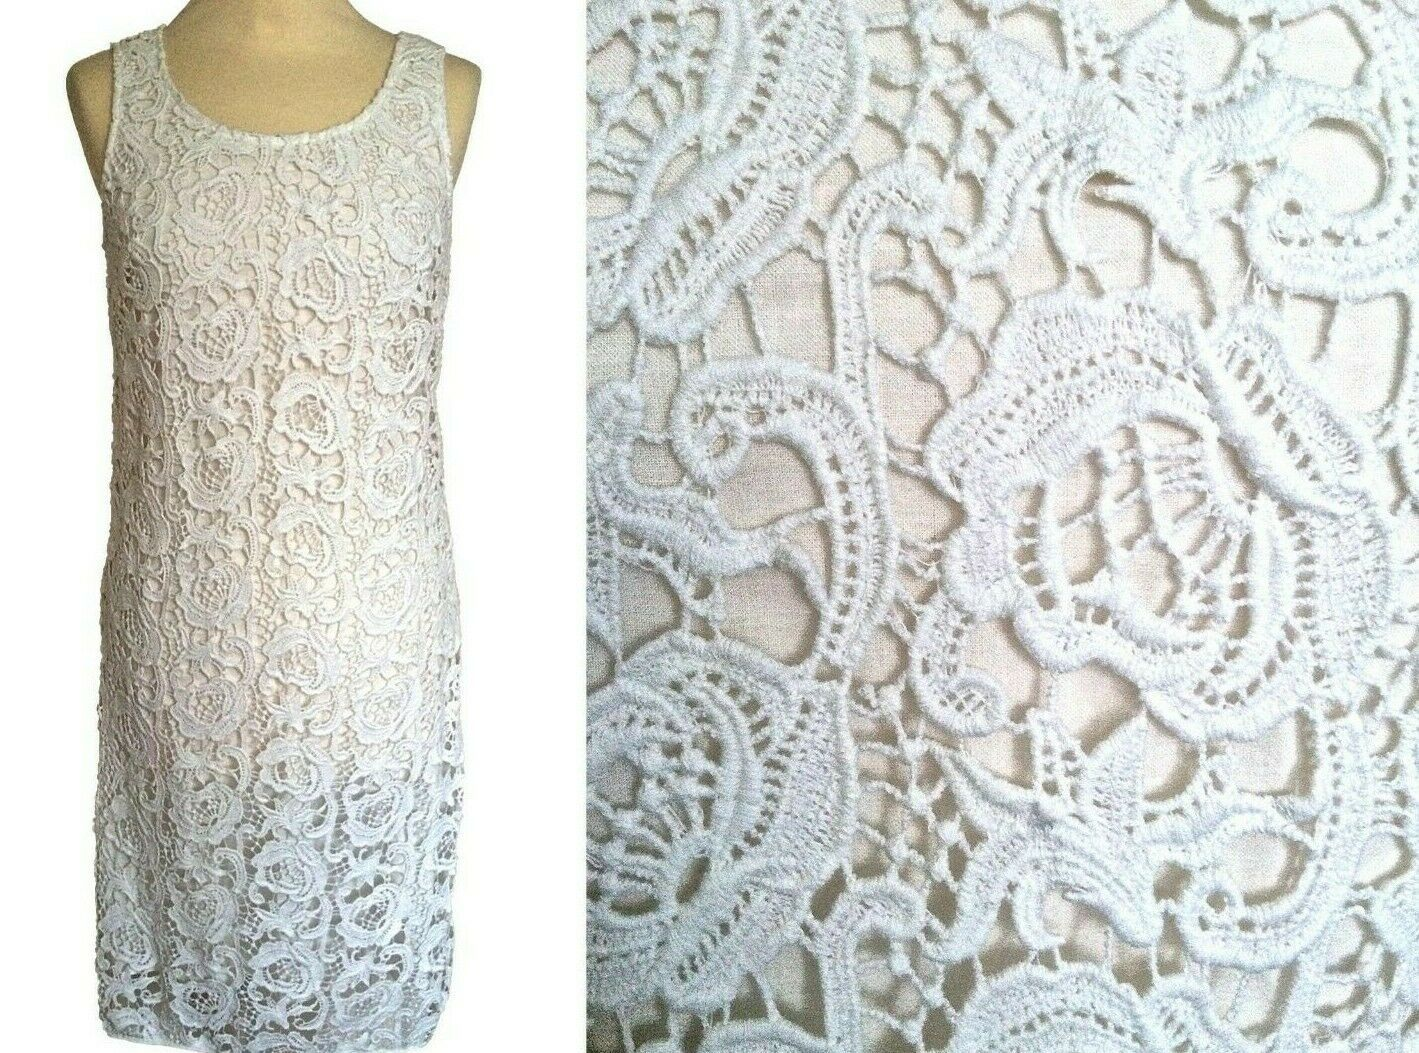 BNWT 100% Cotton Lace Parisian Little White Occasion Cocktail Wedding Dress sz S